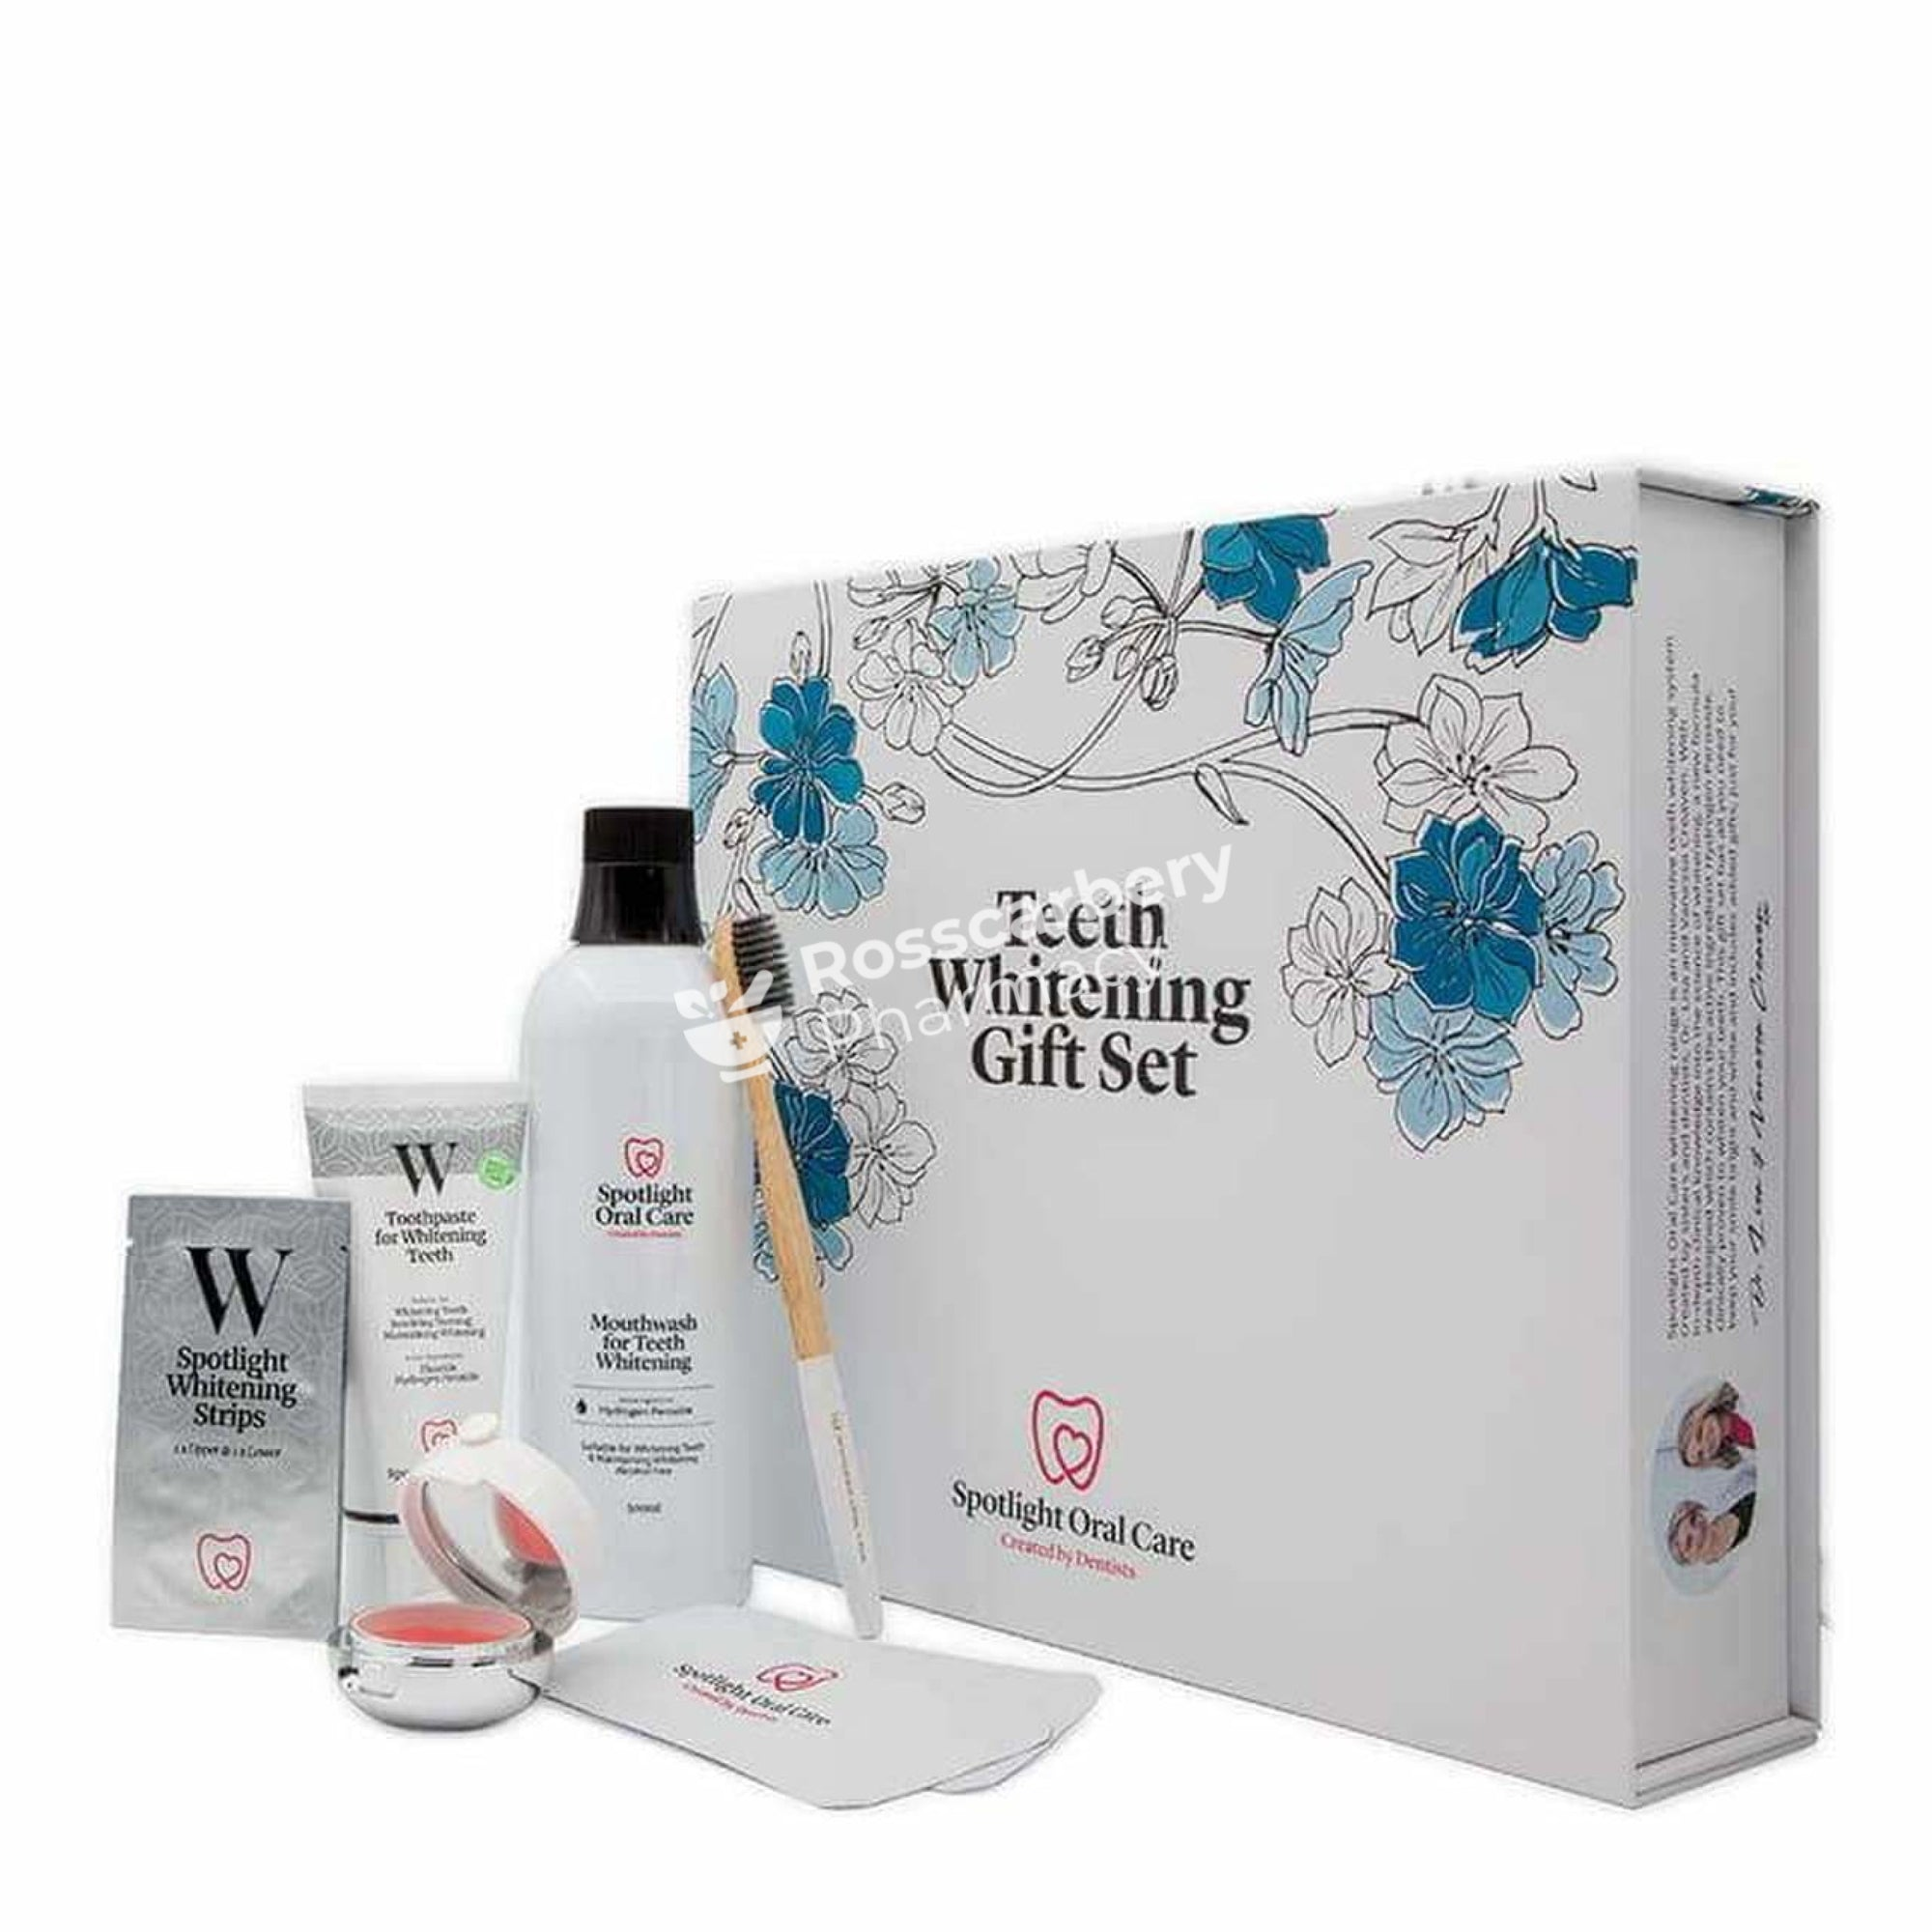 Spotlight Teeth Whitening Gift Set